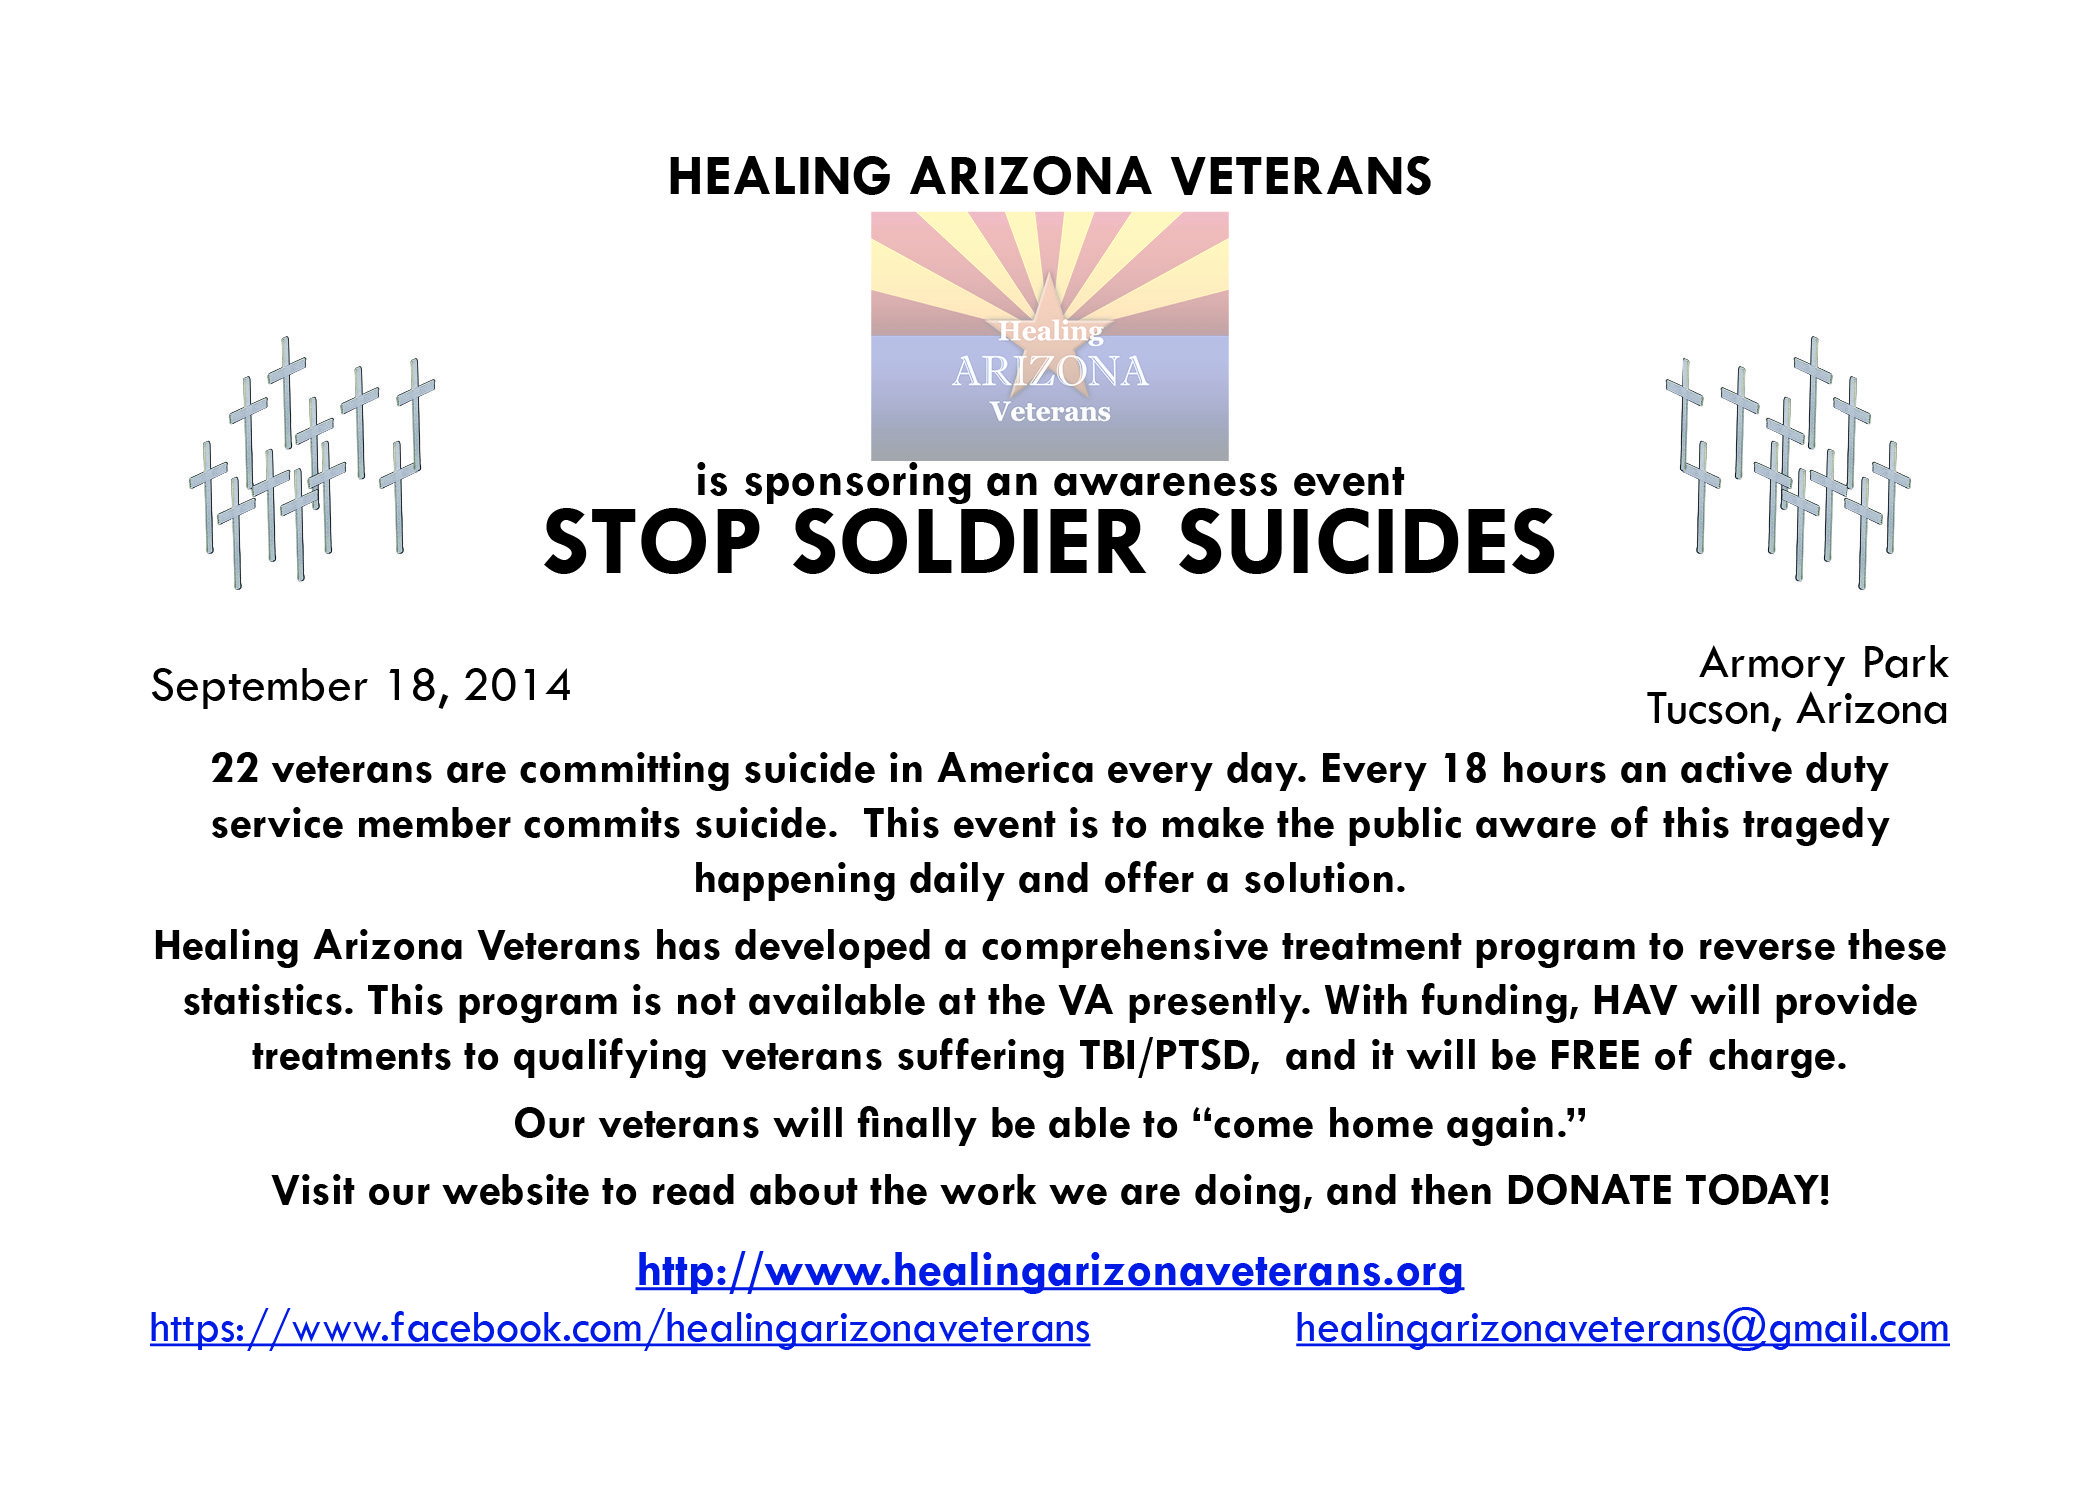 STOP SOLDIER SUICIDES Awareness event information